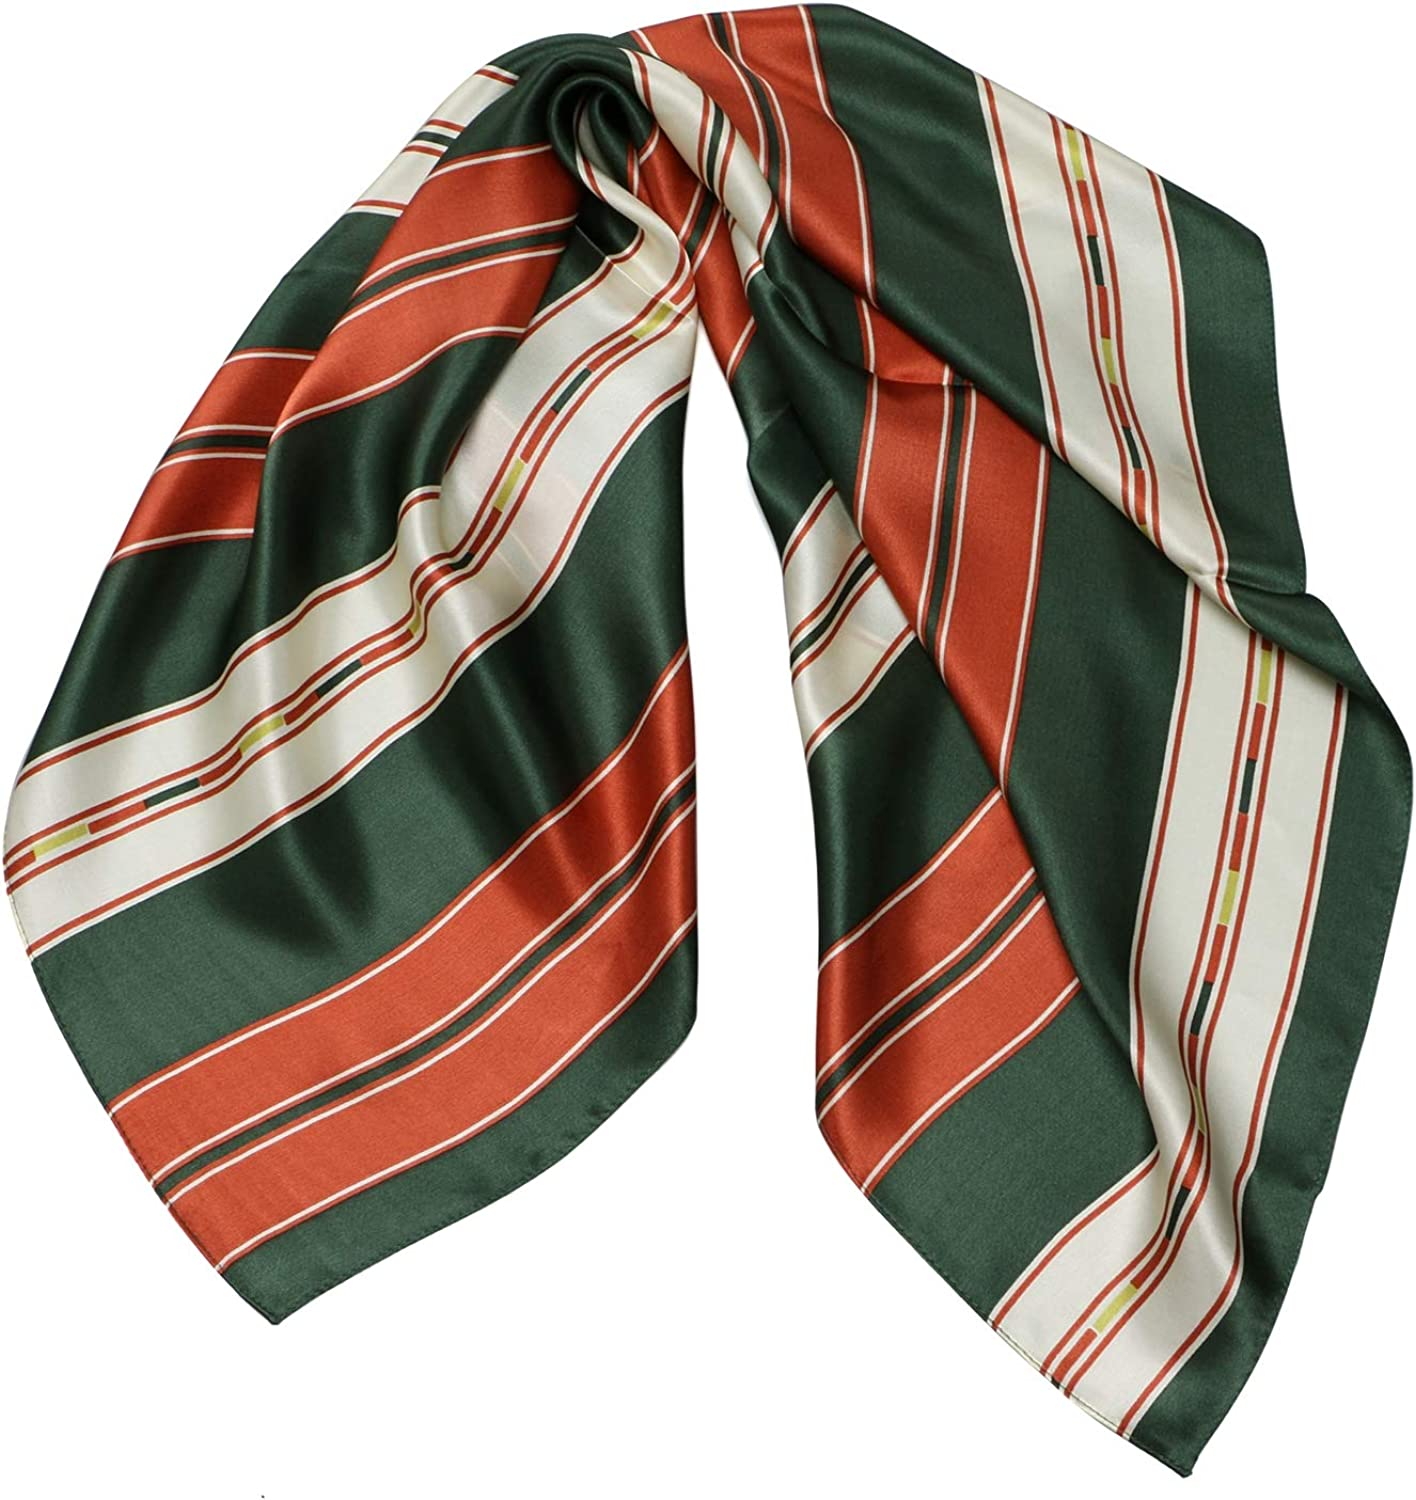 100% Silk Scarf Square Neck Head Scarves for Women 26